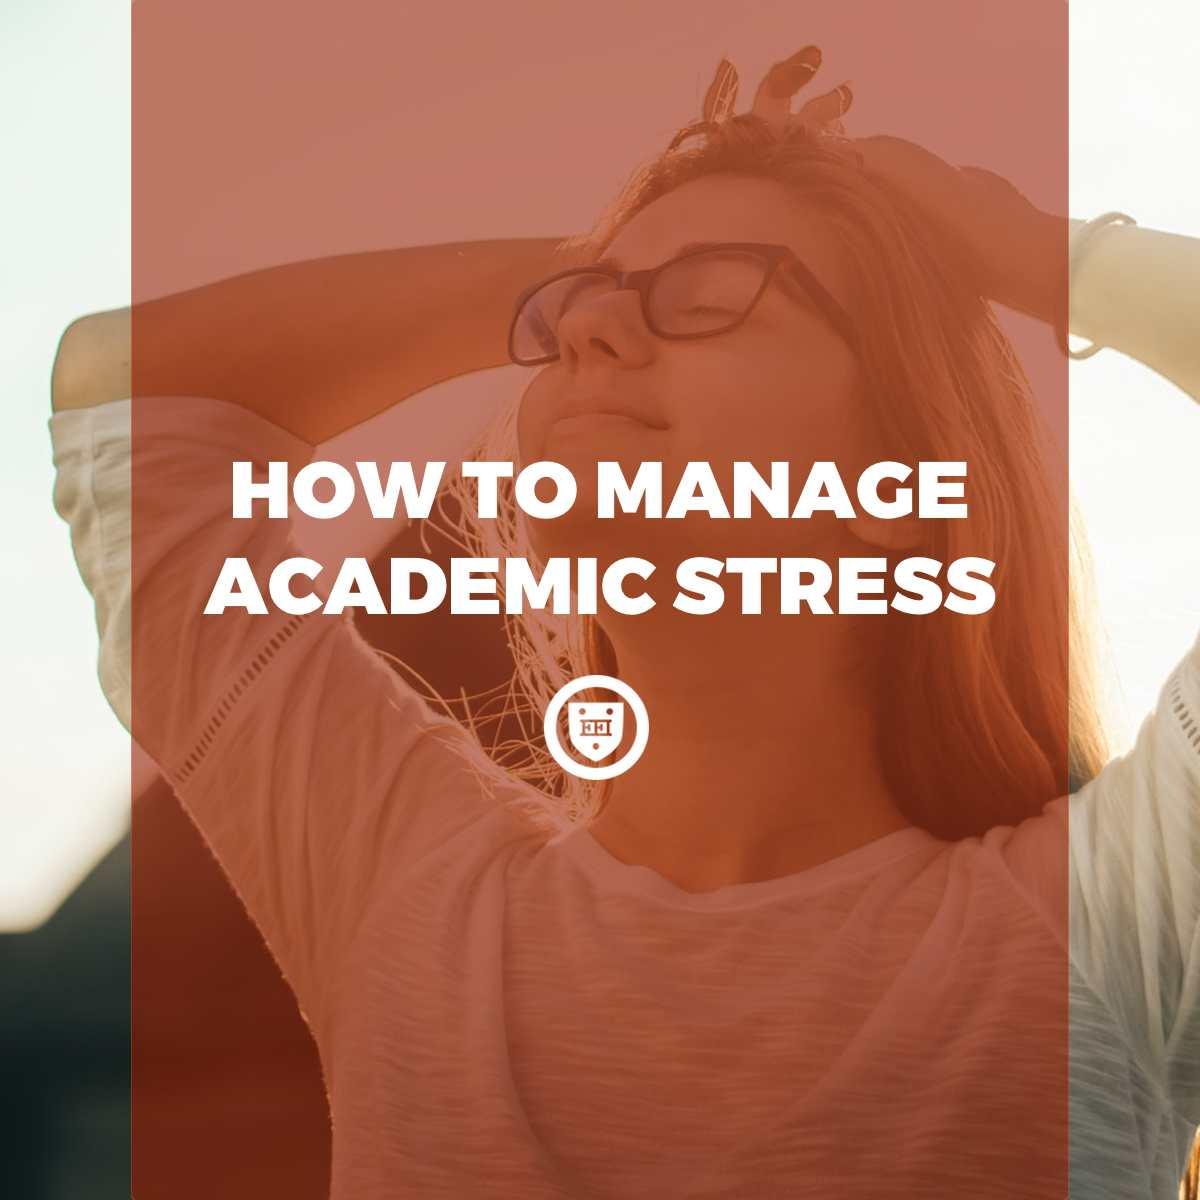 How to Manage Academic Stress